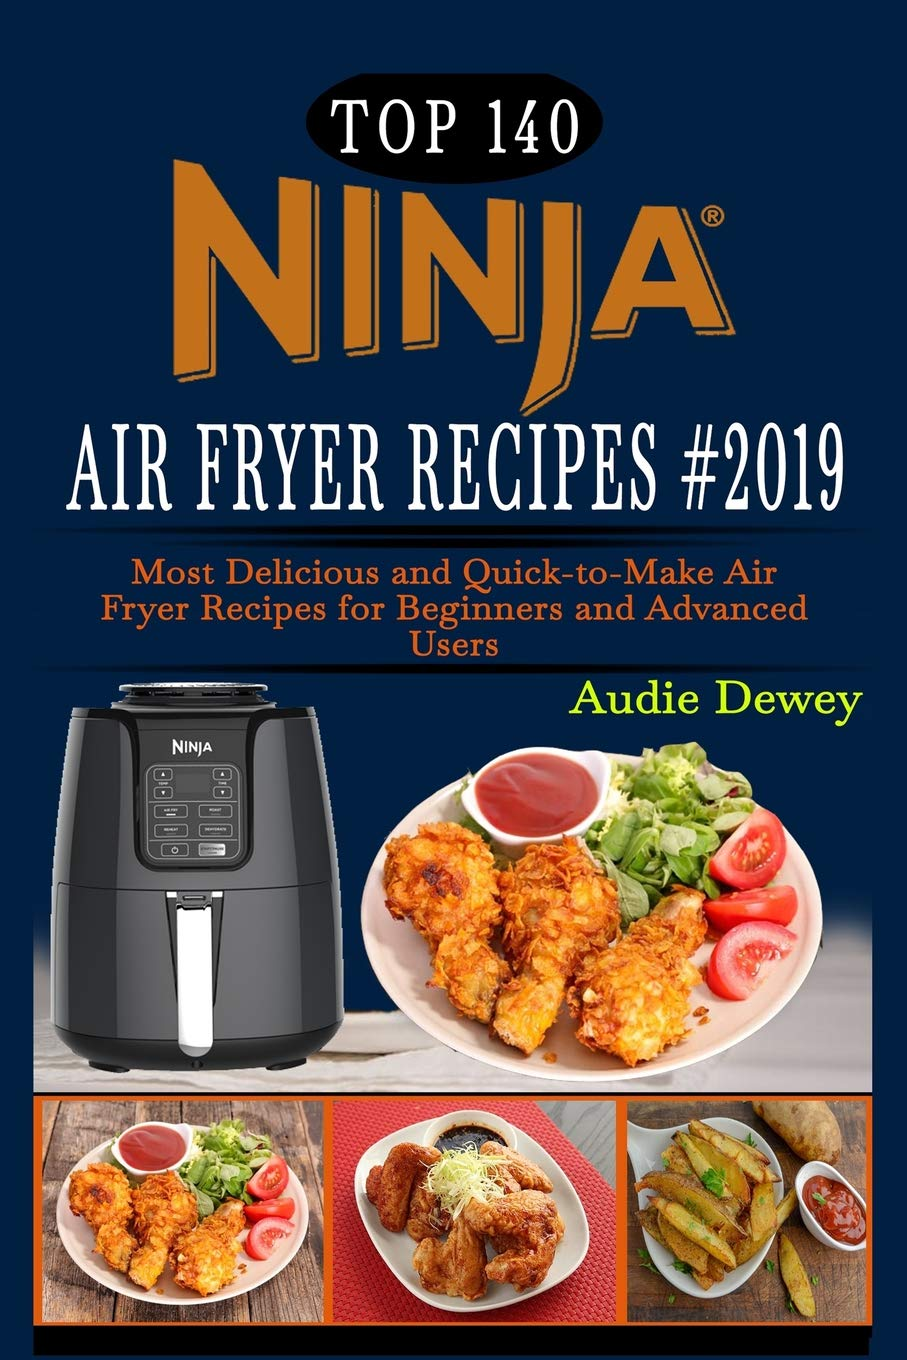 Top 140 NINJA Air Fryer Recipes #2019: Most Delicious and ...